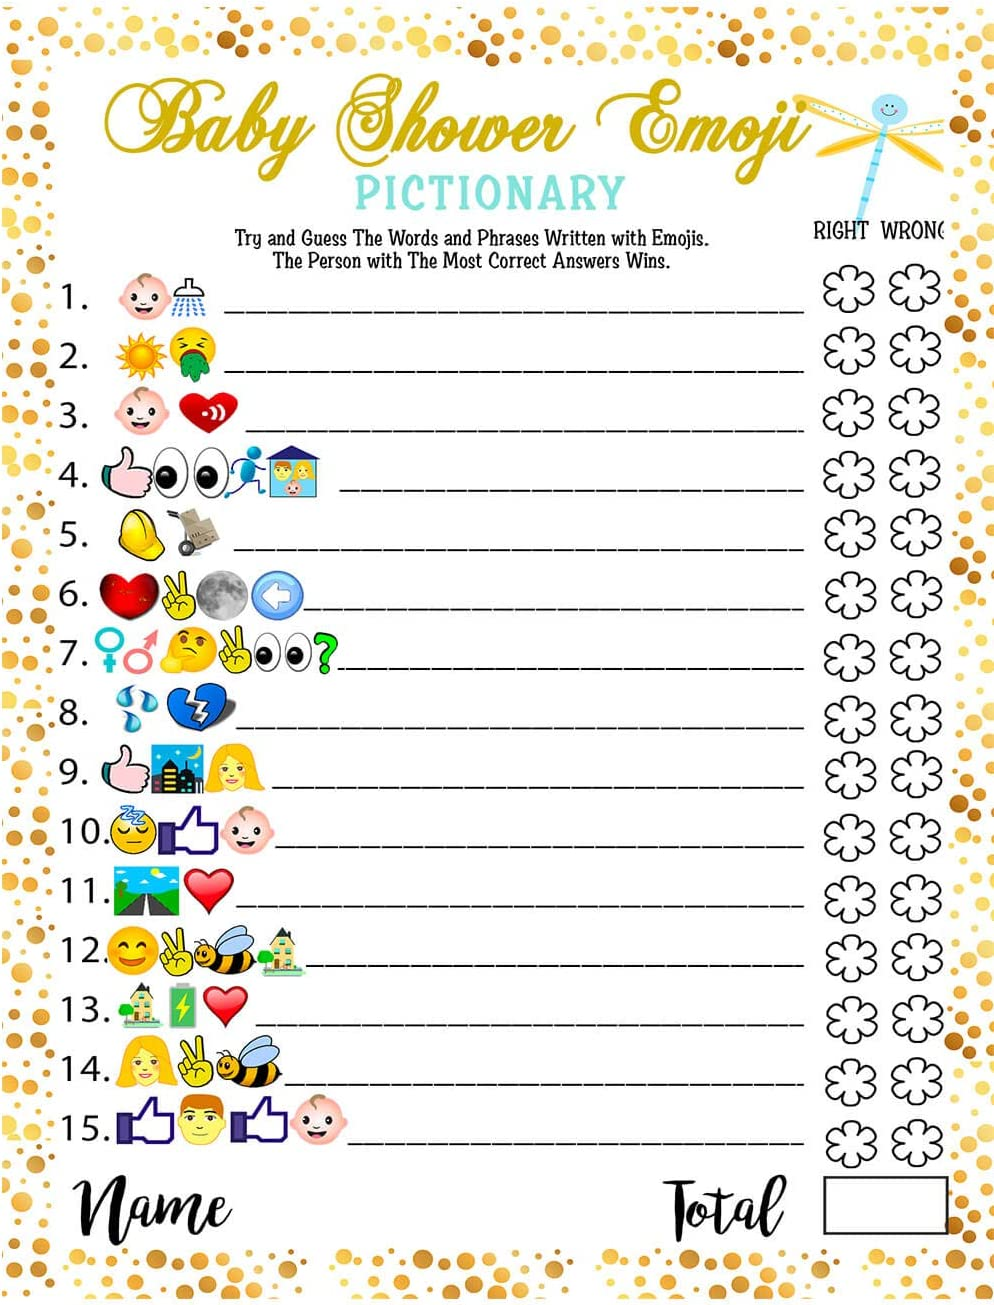 Baby Shower Games - Emoji Pictionary, Fun Guessing Game Girls Boys Babies Gender Neutral Ideas Shower Party, Prizes for Game Winners, Favorite adults Games for Baby Shower Favors Activities